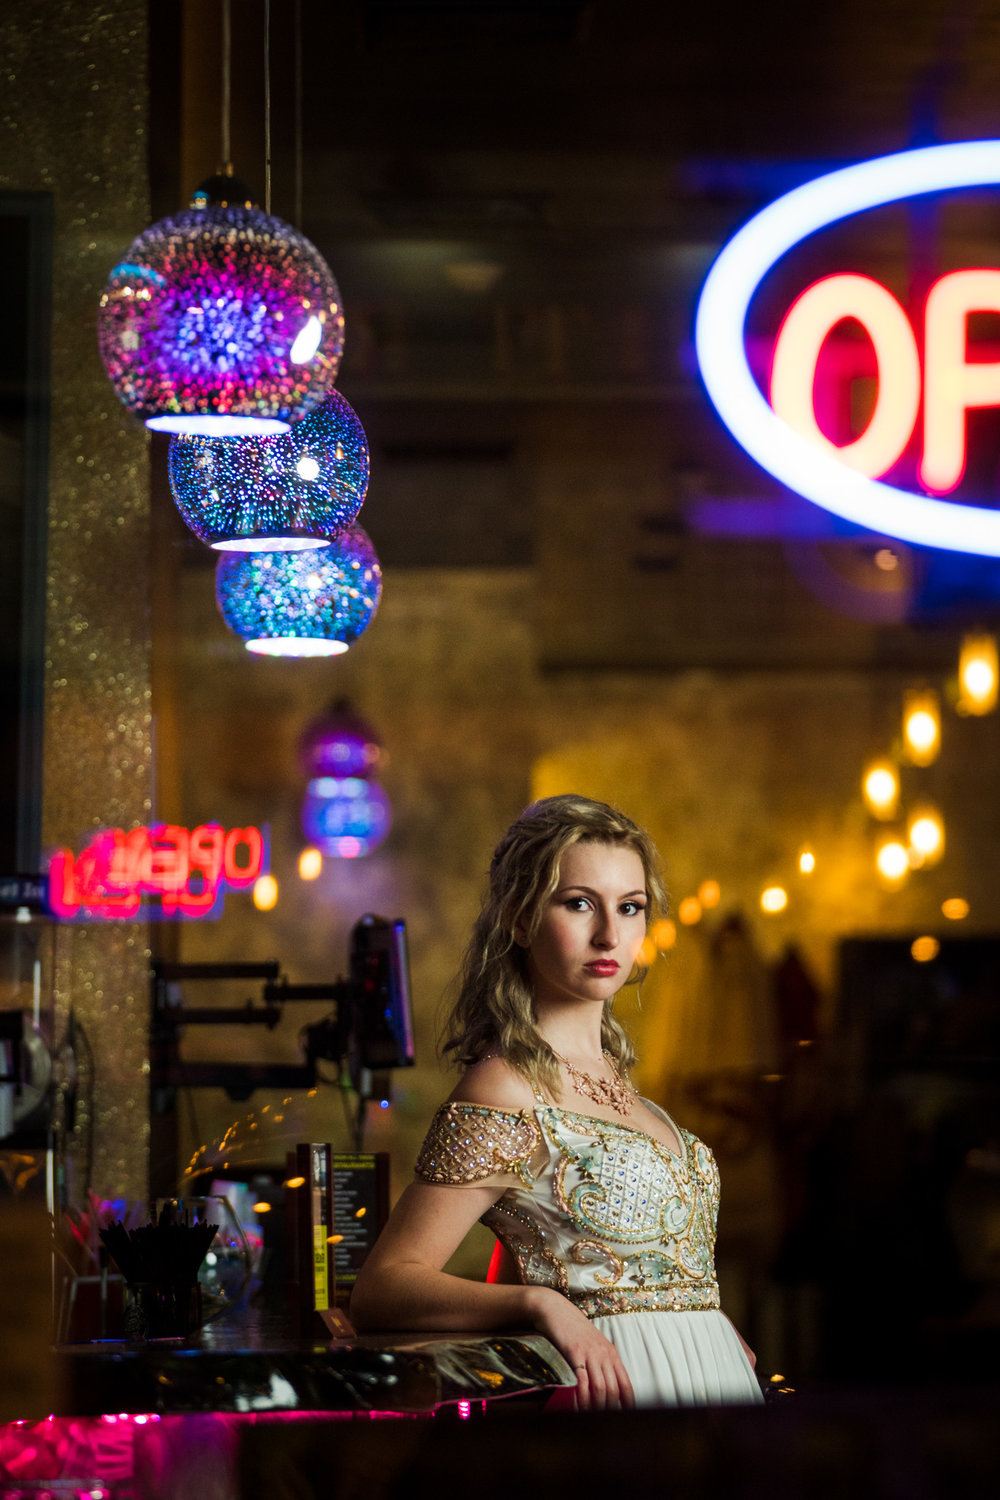 Model with neon signs